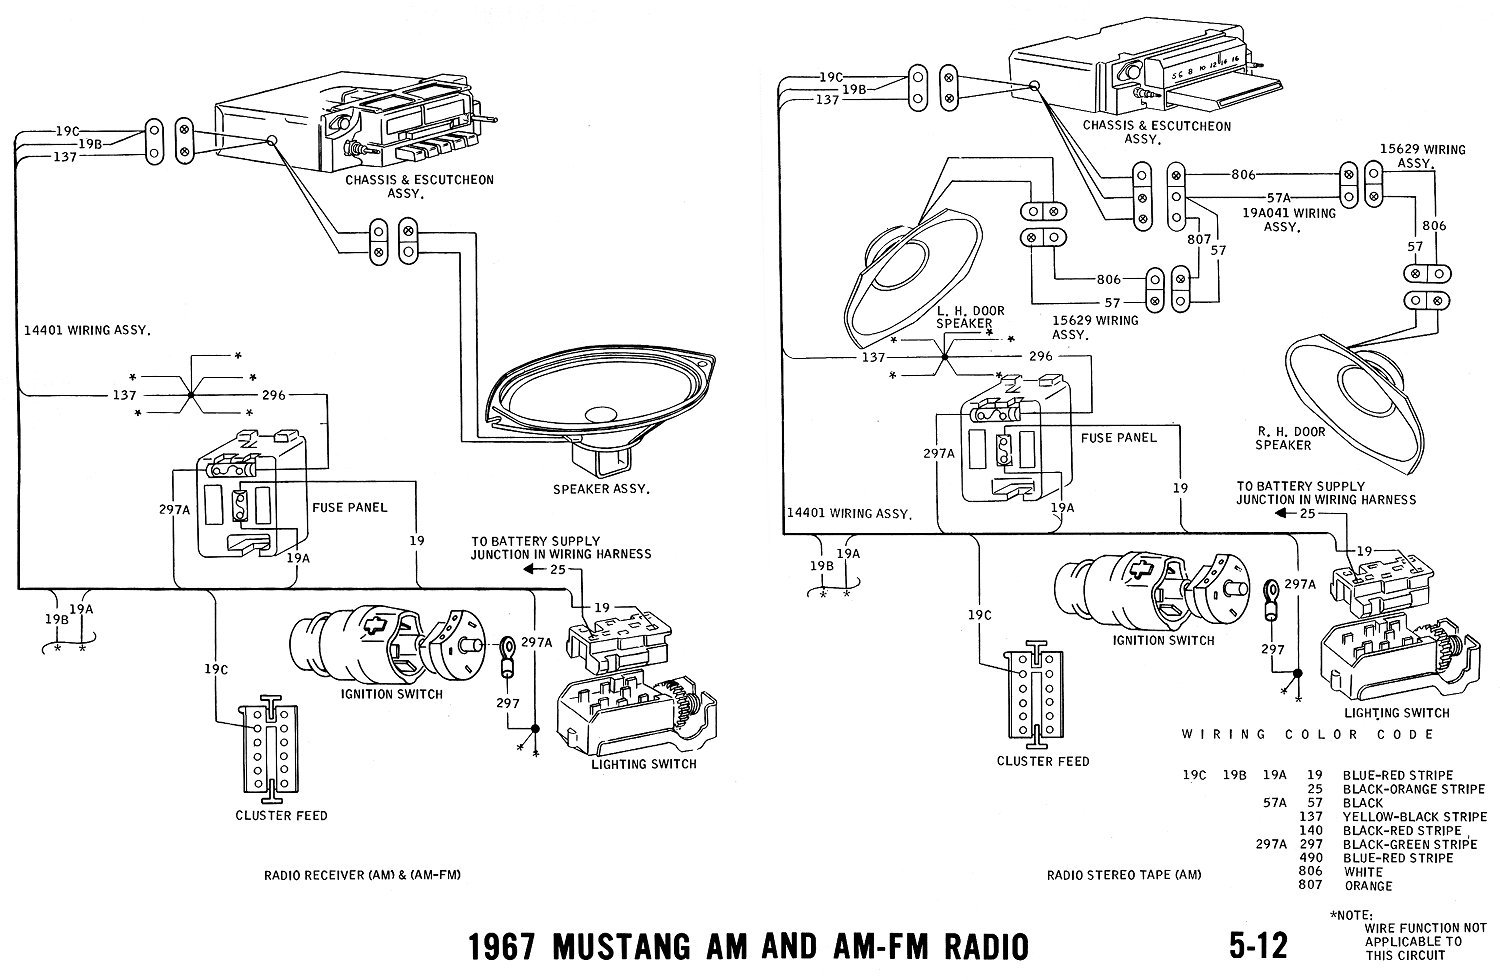 1965 thunderbird wiring harness diagram with Technik Plan on 1977 Ford Alternator Wiring Diagram moreover 1919mecopost together with Watch furthermore 89 Ford F250 Wiring Diagrams together with 512354895079246342.